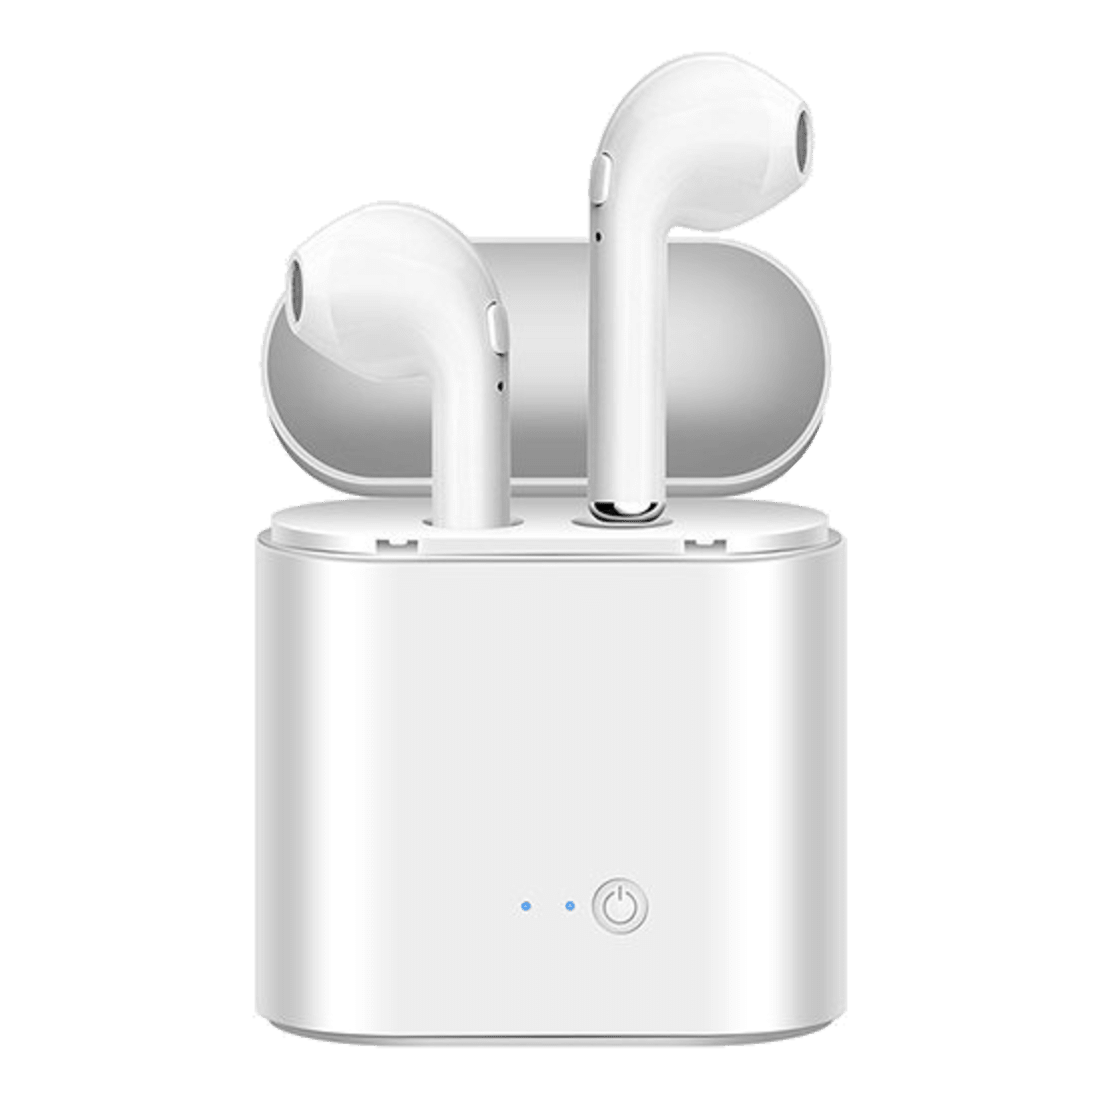 Airbuds True Wireless Stereo Bluetooth Earbuds With Charging Case